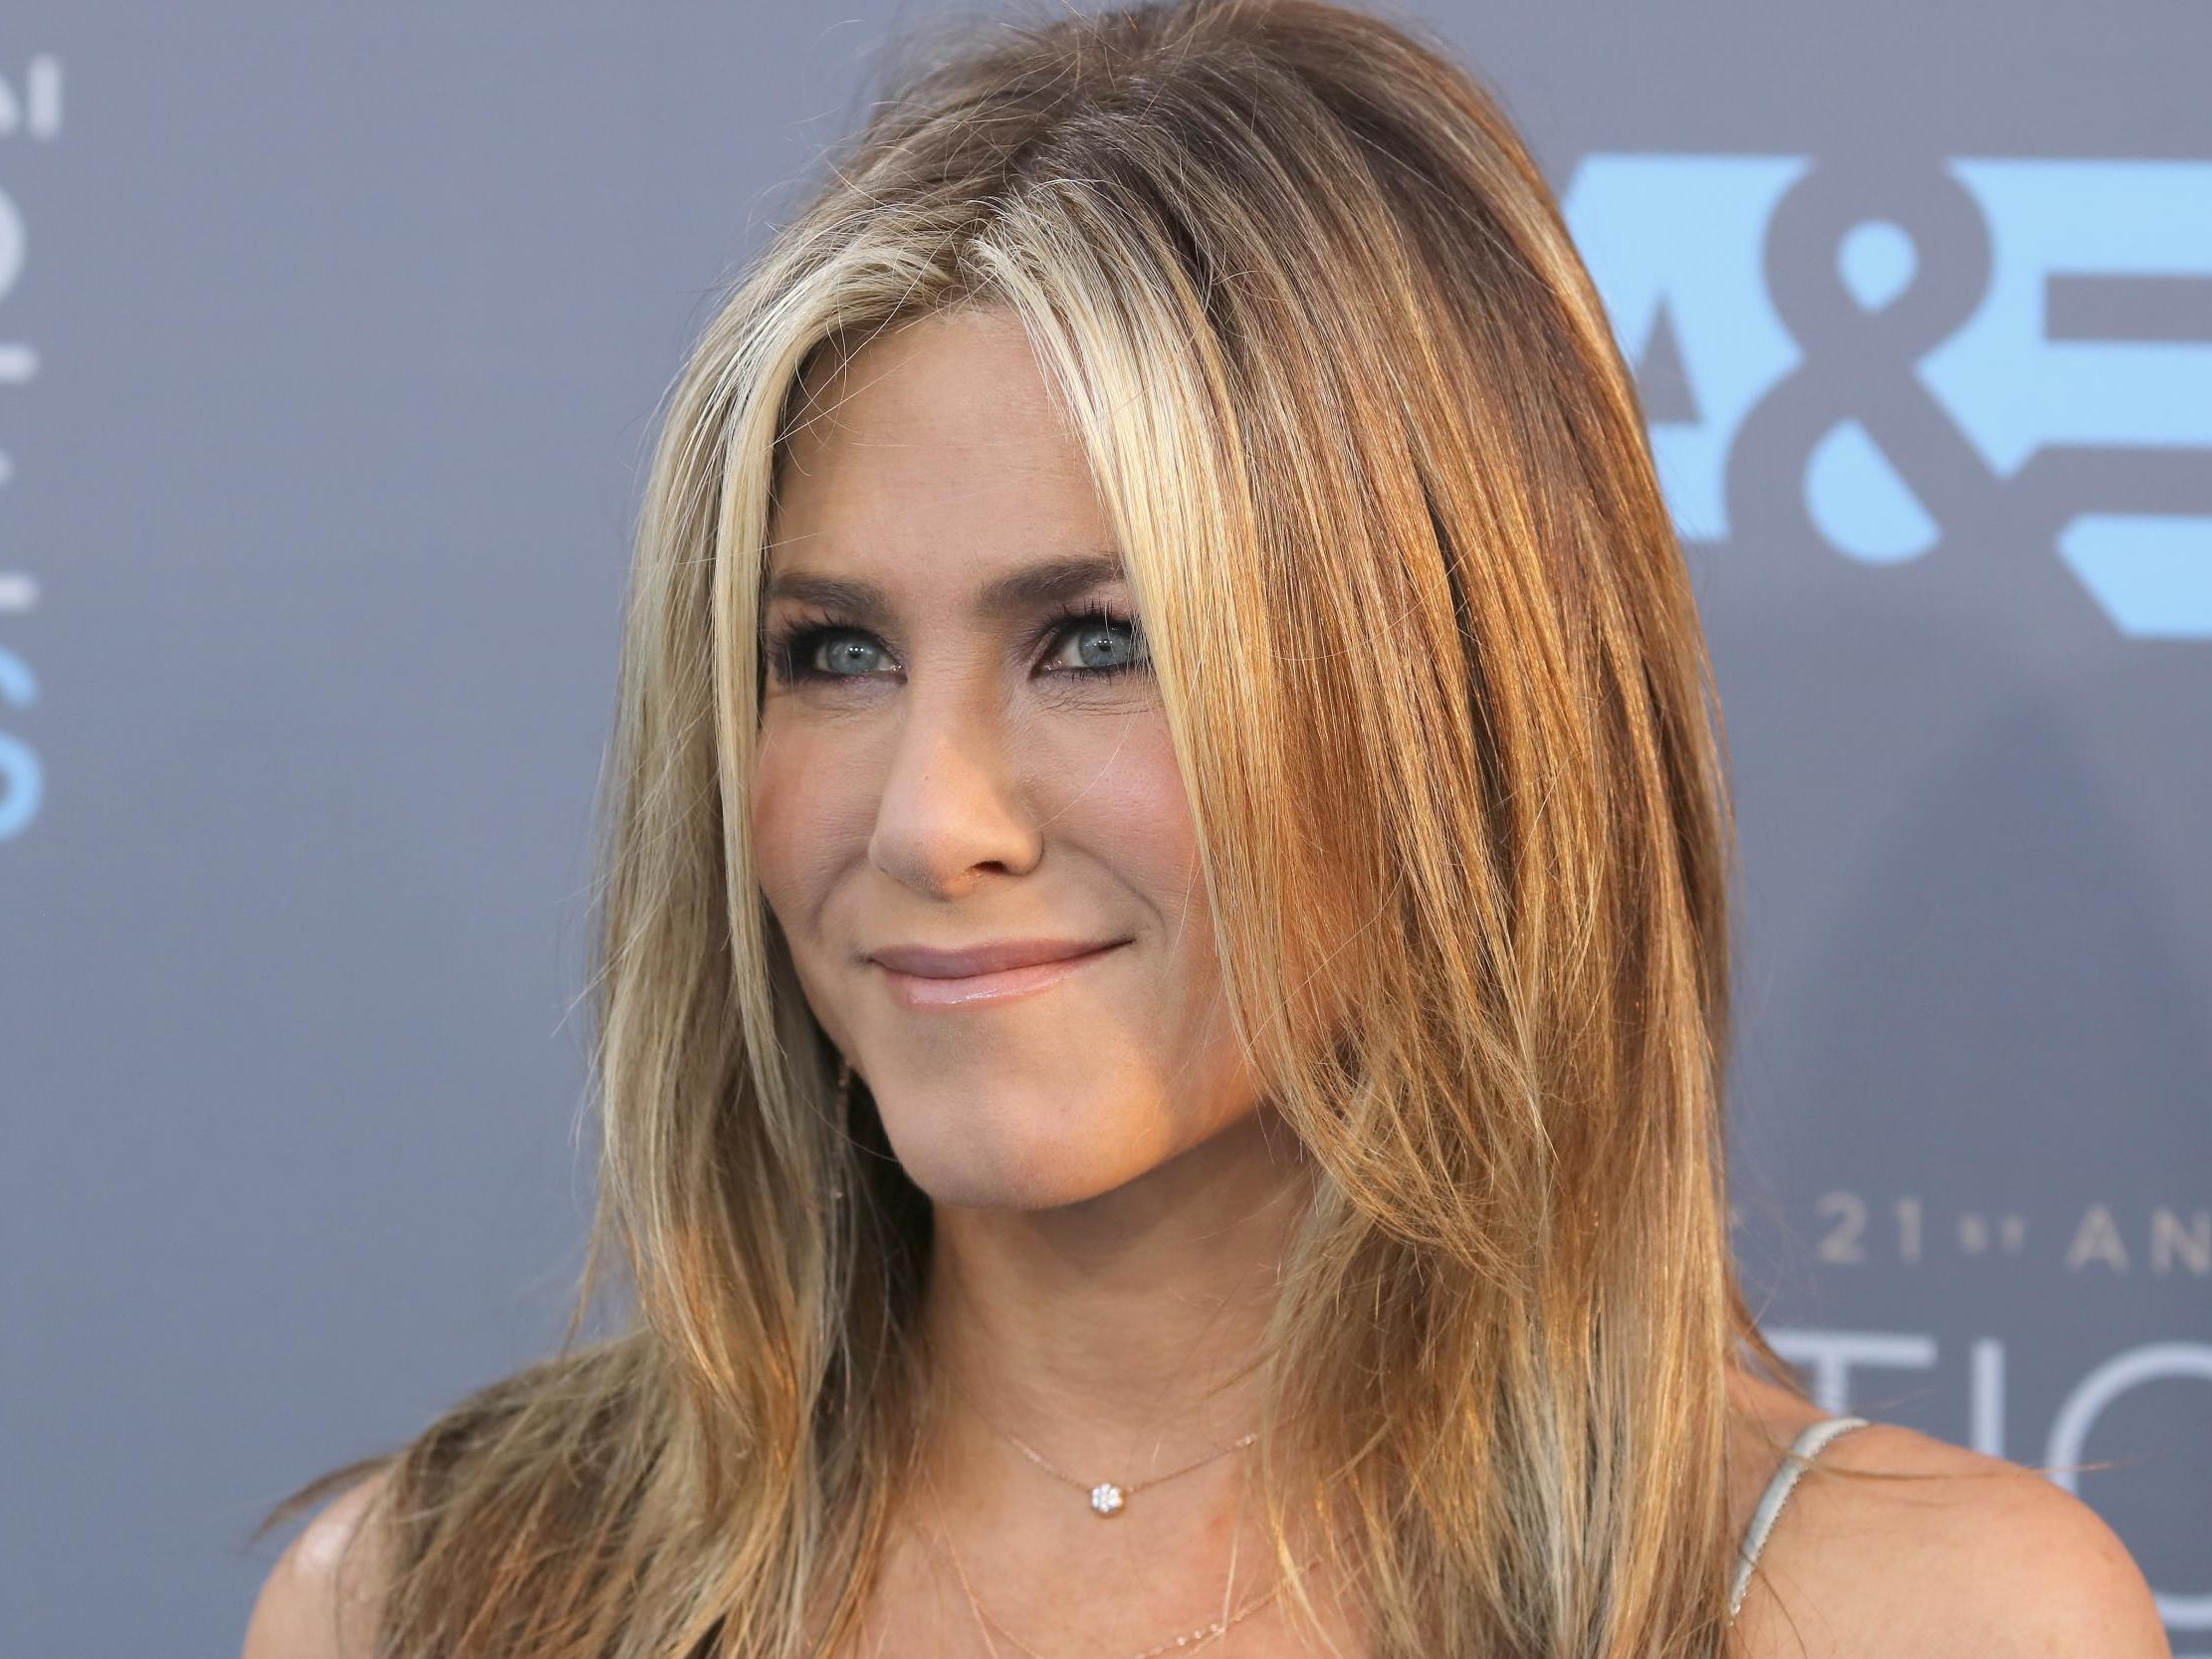 Jennifer Aniston shares first throwback Instagram photo with cute ch…